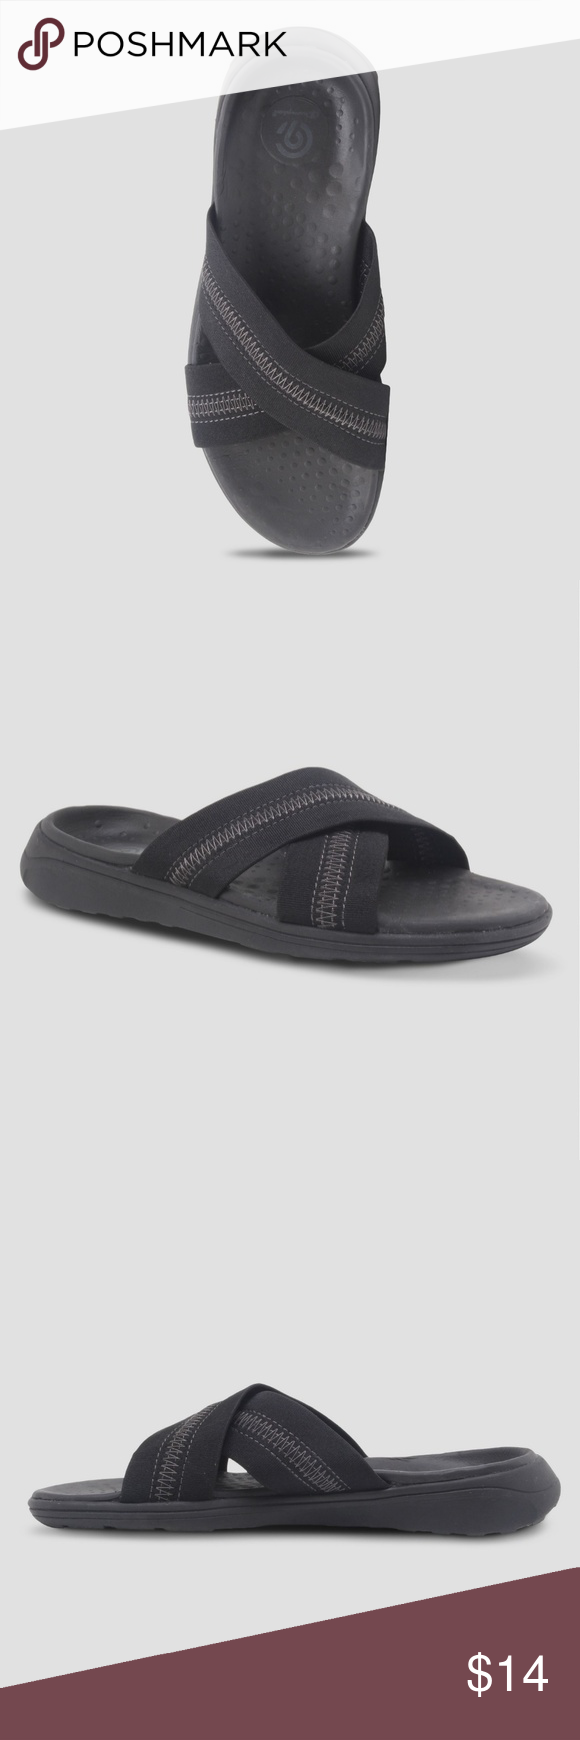 68d5ddb6e4b96 Women s Deana Slide Sandal - C9 62-130 Women s c9 champion slide on sandals.